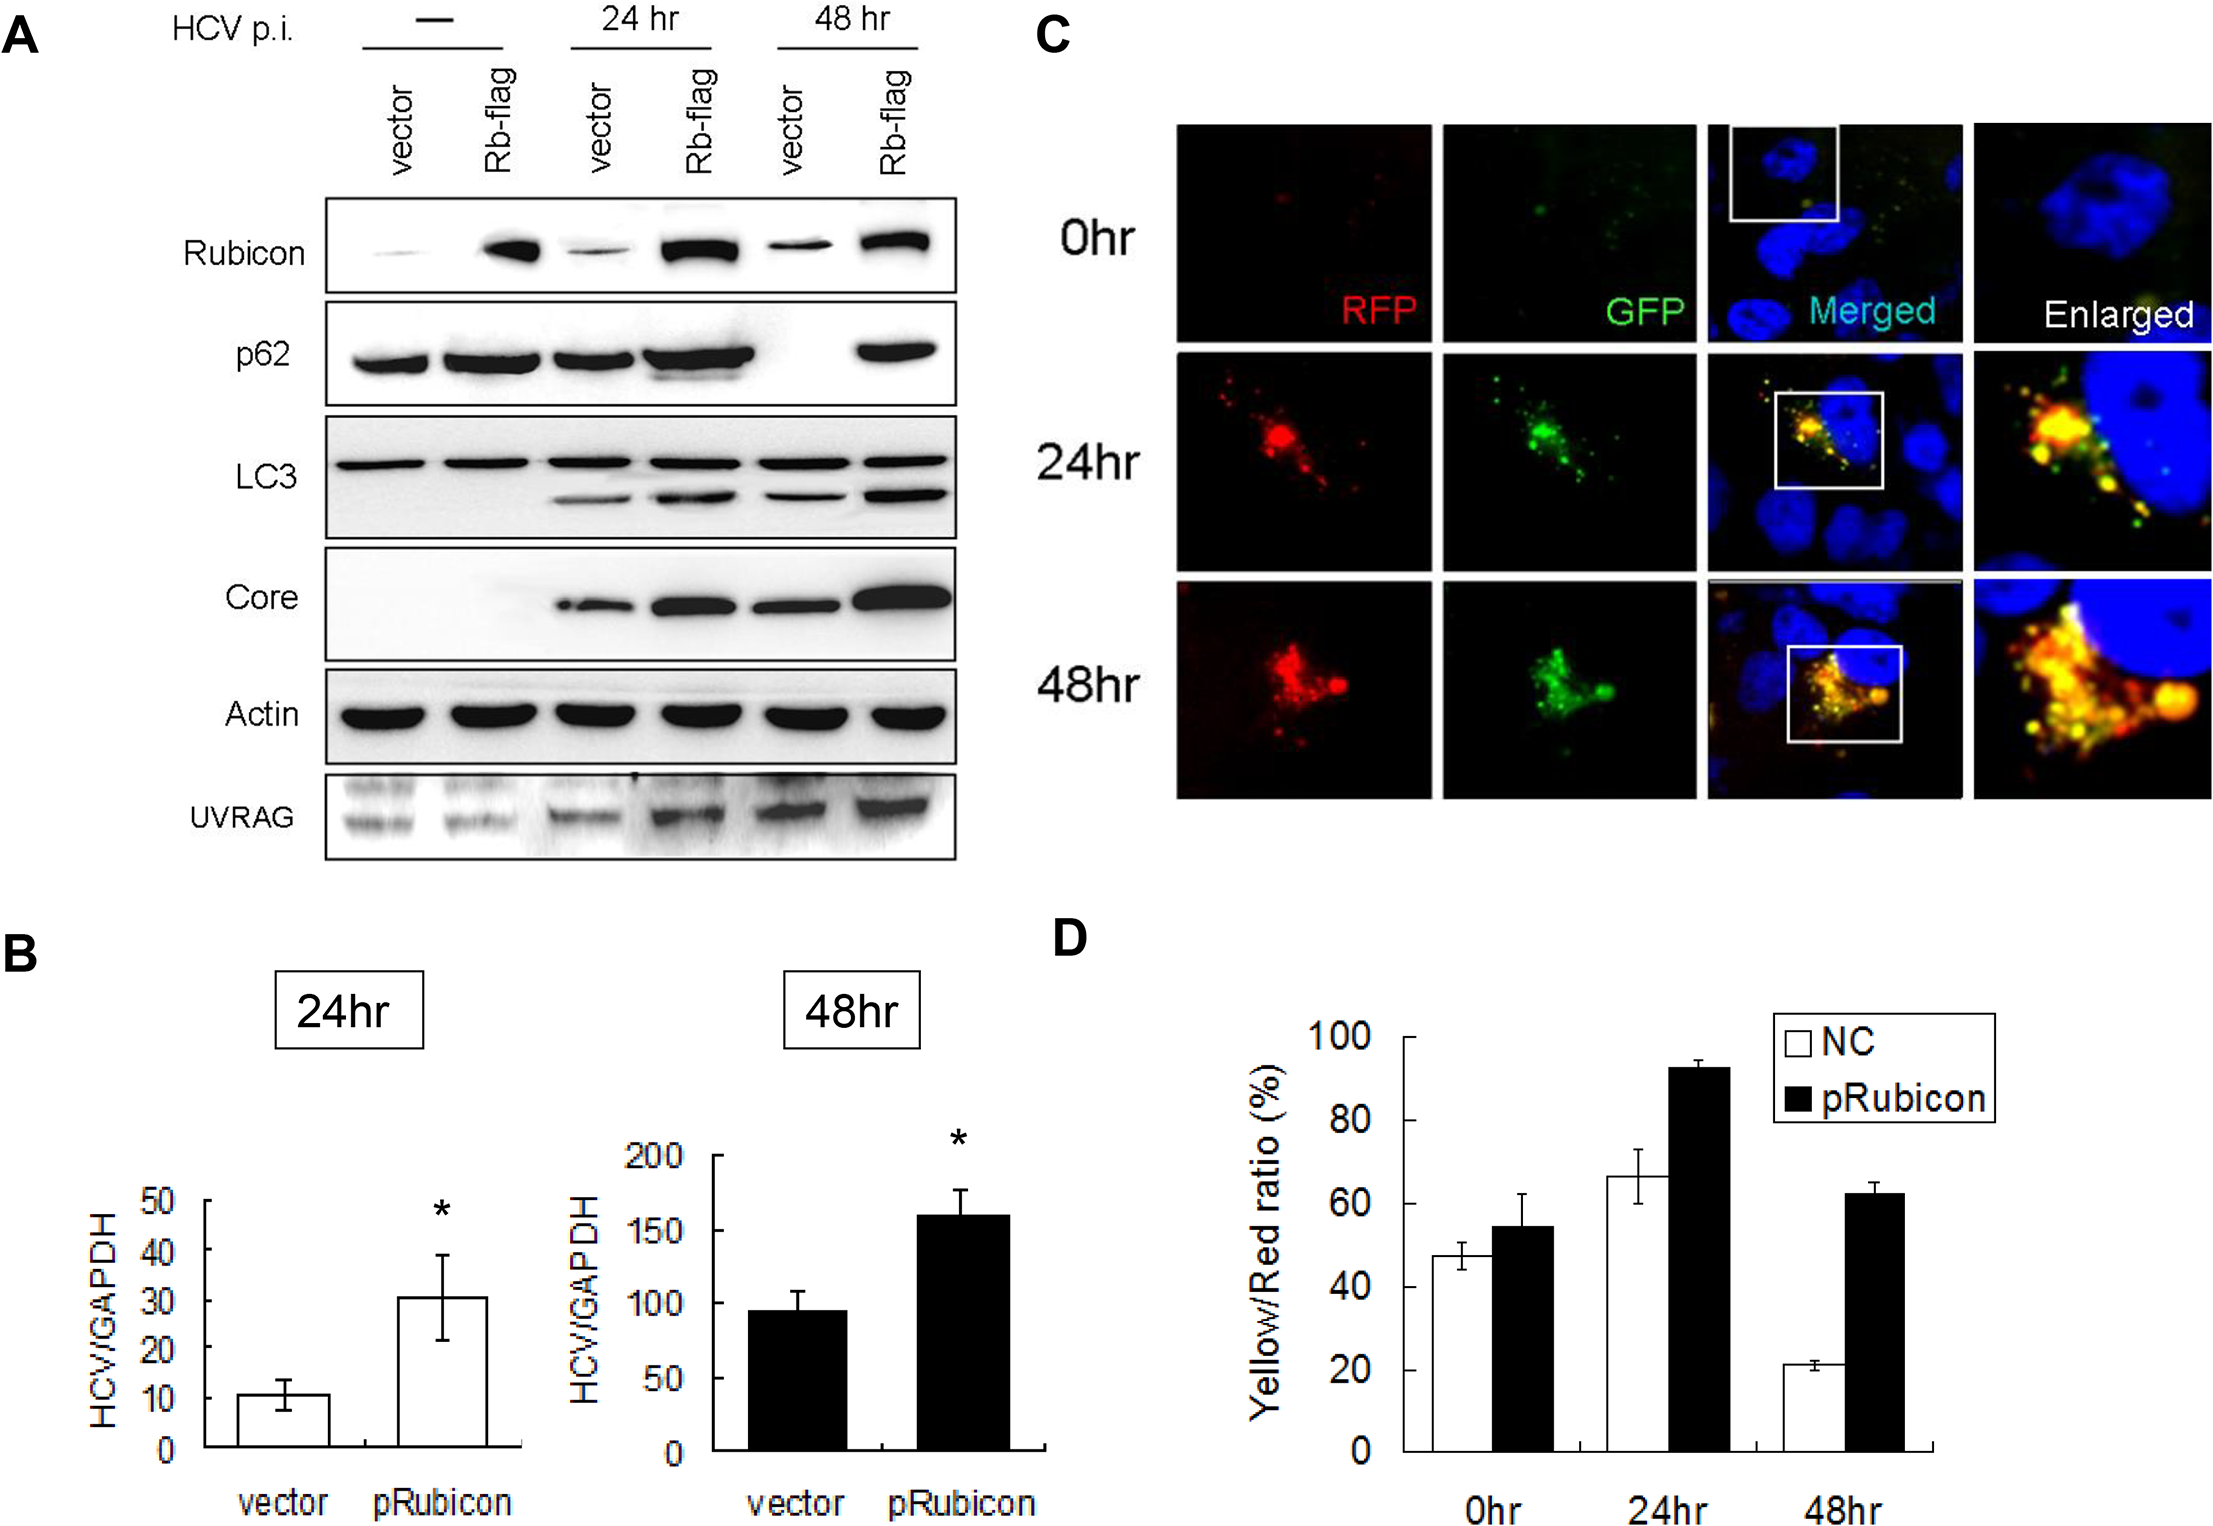 Over-expression of Rubicon inhibited the maturation of autophagosomes and enhanced HCV RNA replication.